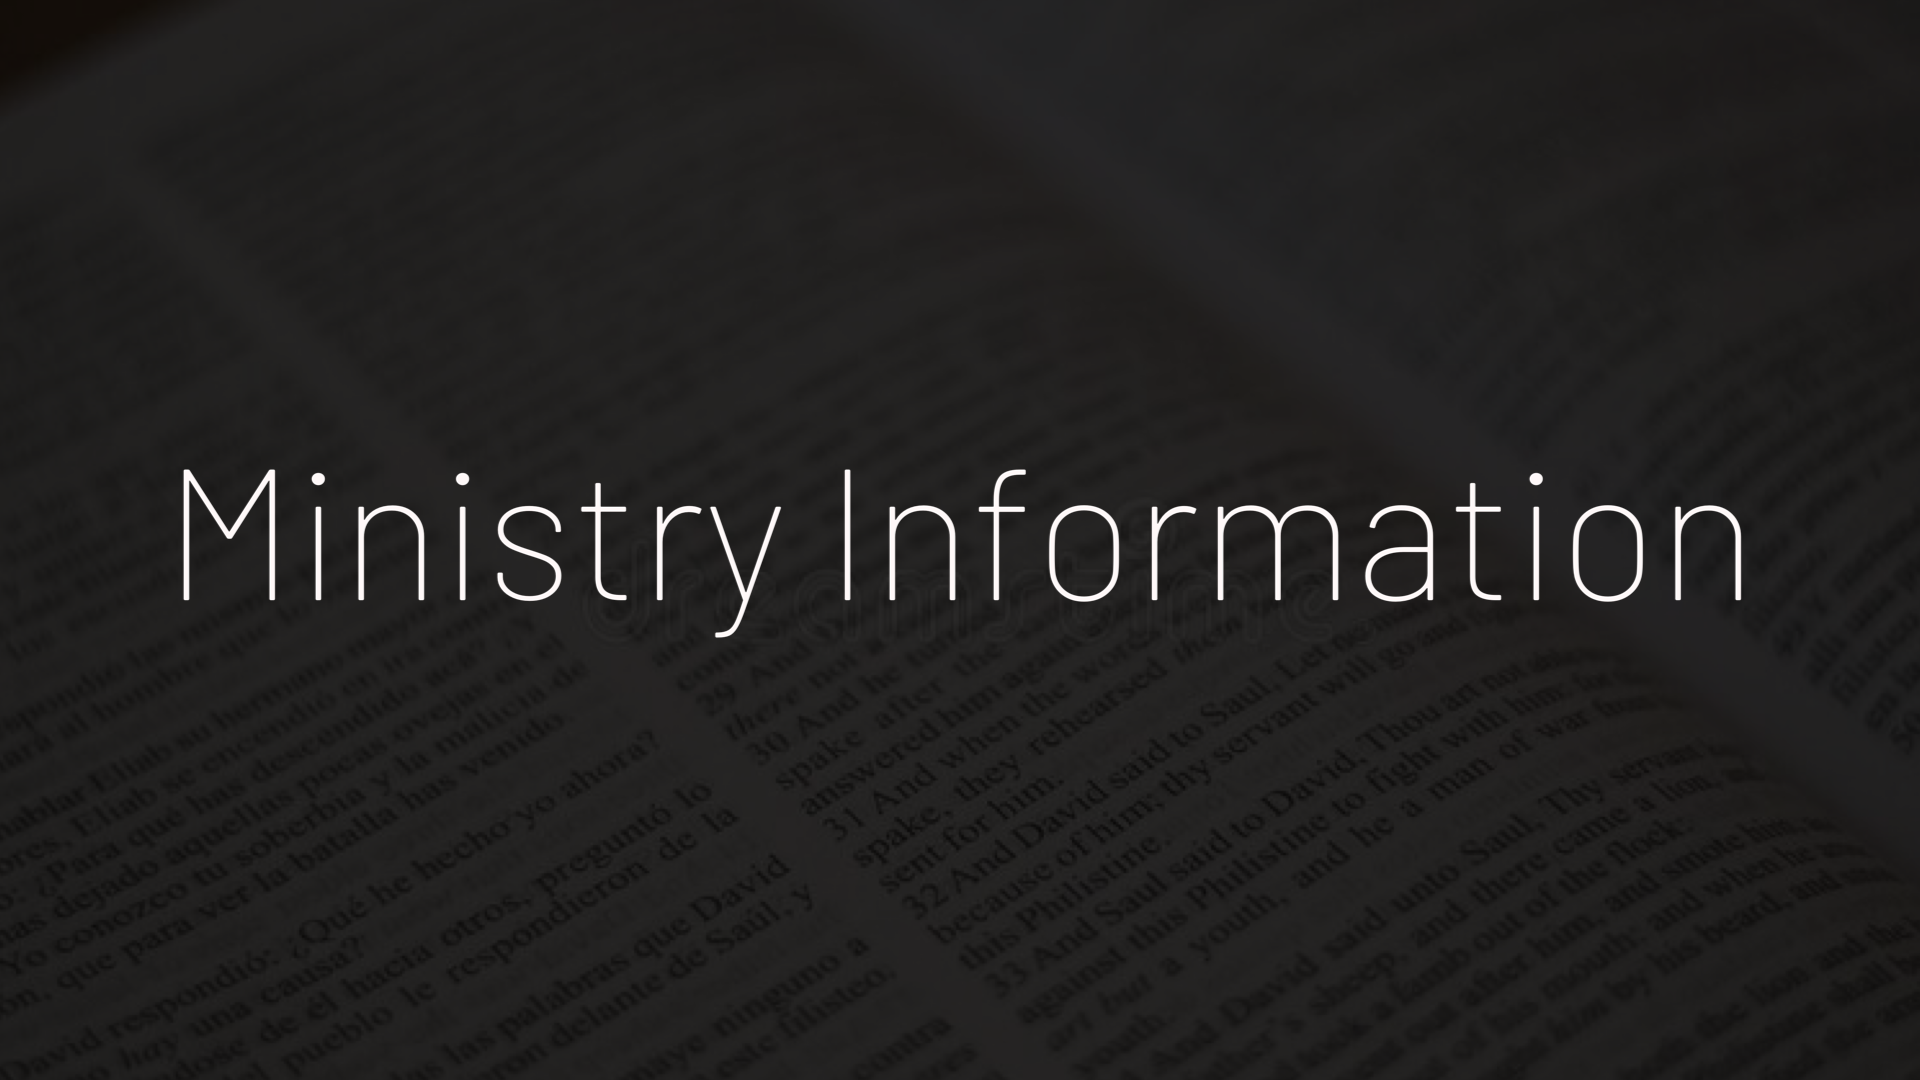 Ministry Information 4